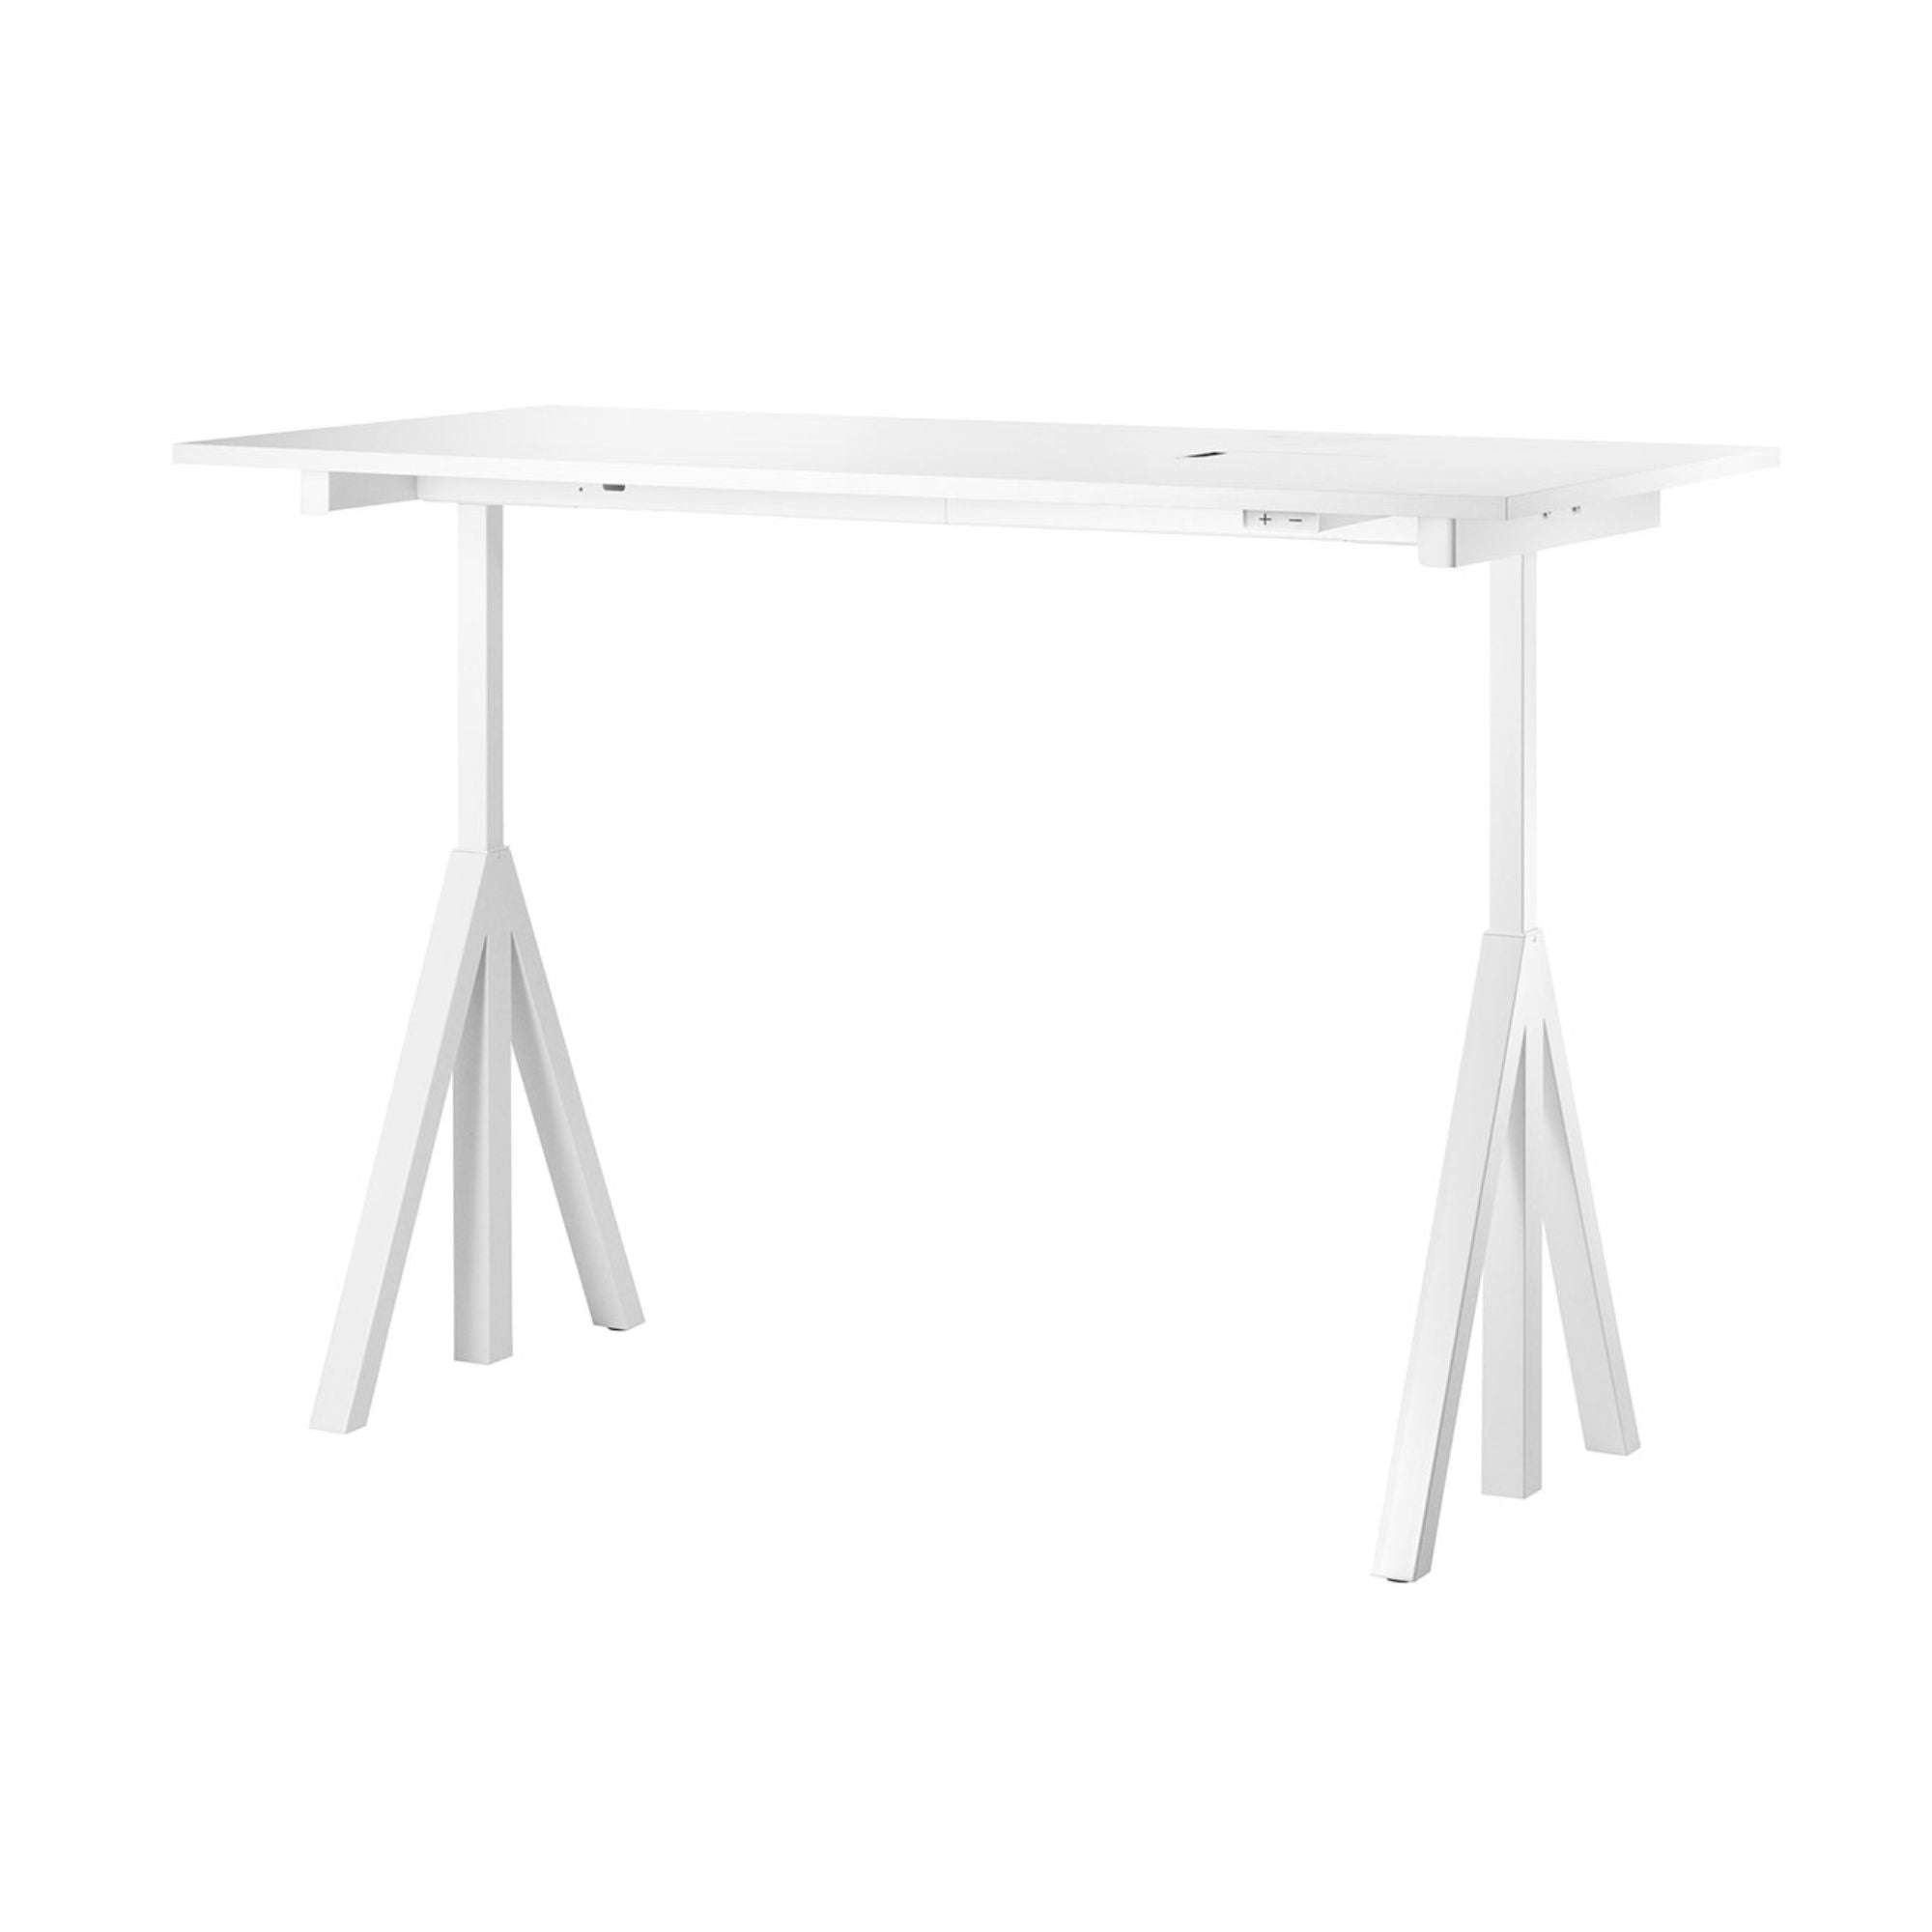 String Works™ Heigh-Adjustable Desk, White Laminate (120x78 cm)